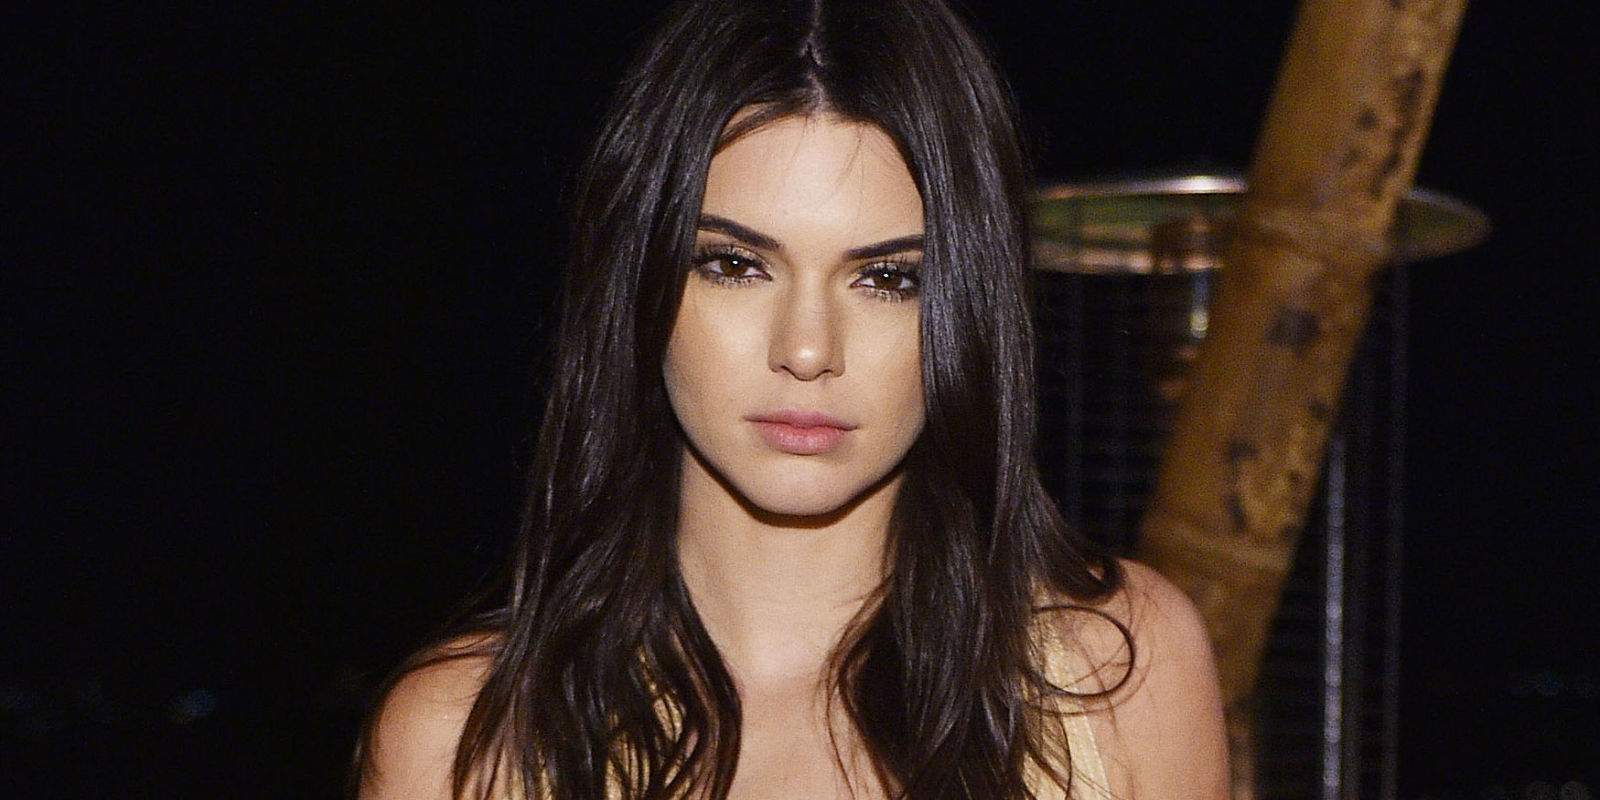 Kendall Jenner Wears Gray Contact Lenses